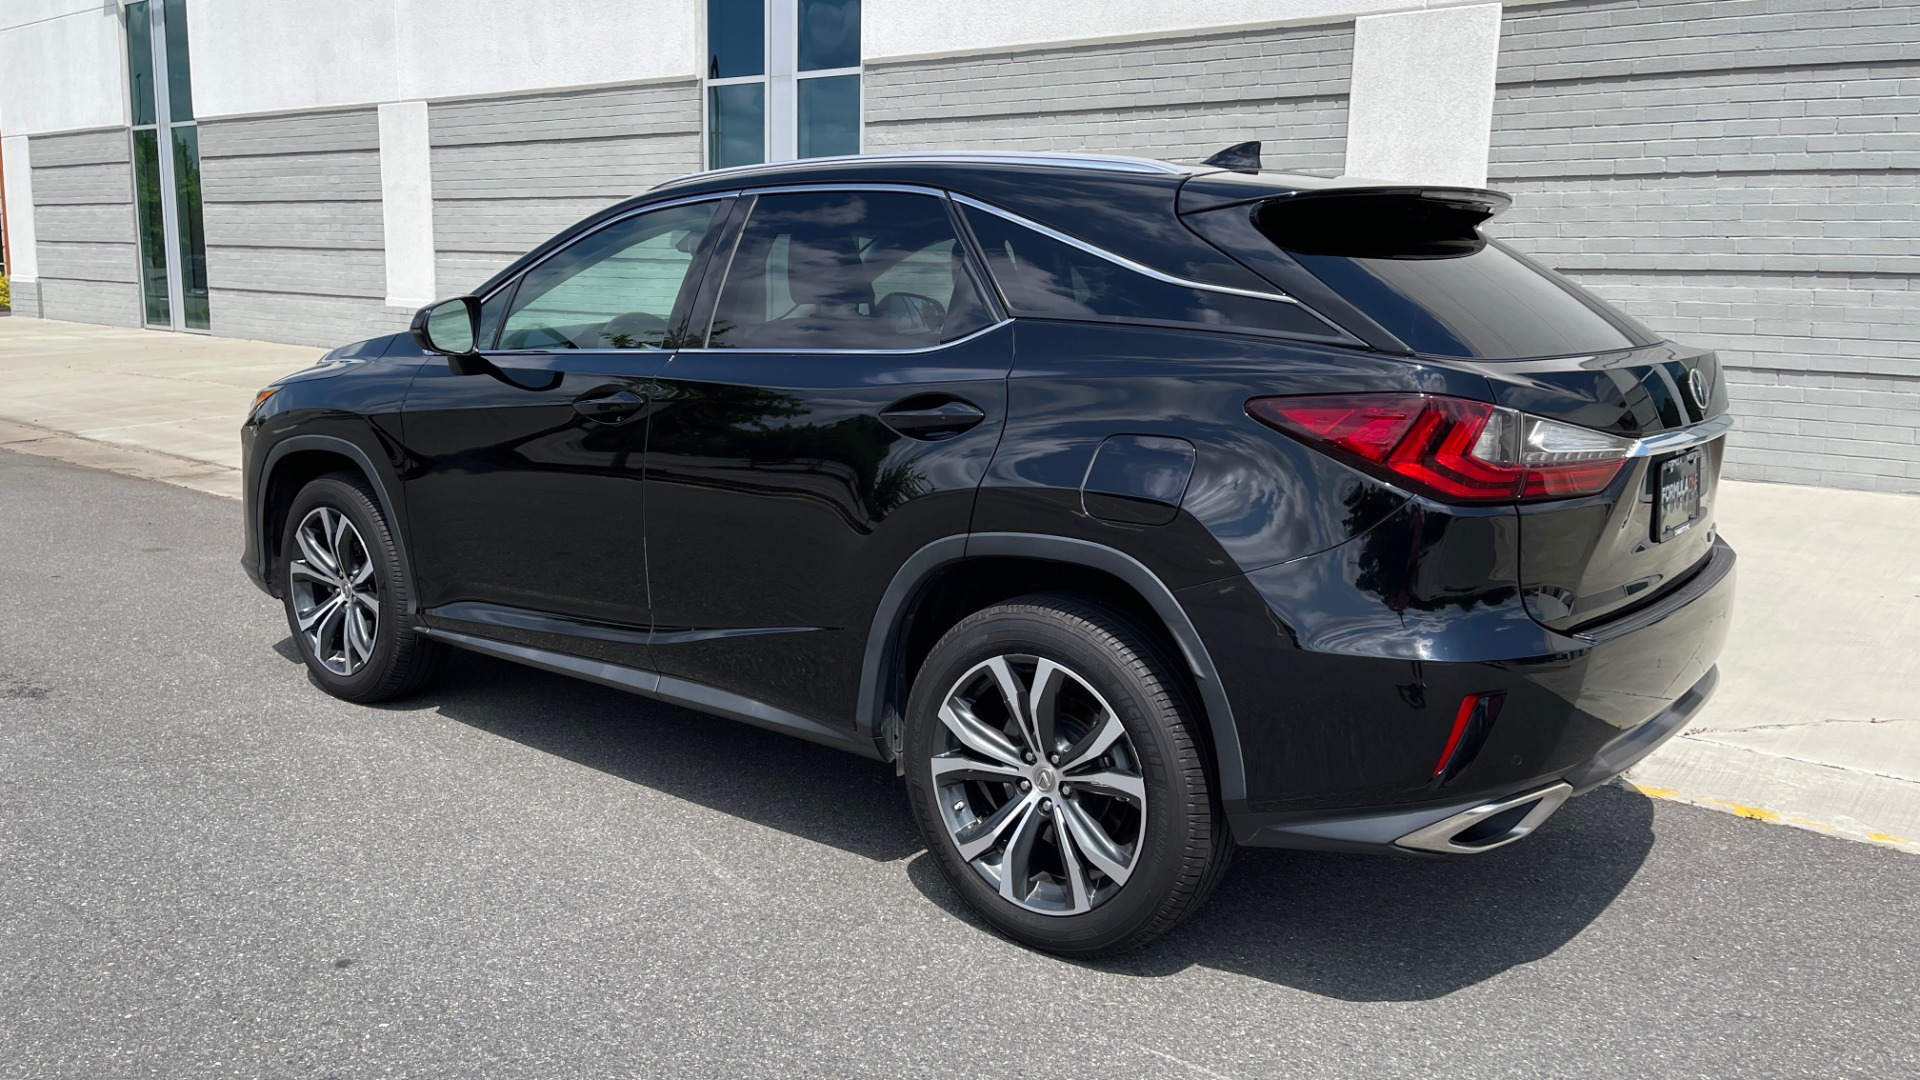 Used 2016 Lexus RX 350 PREMIUM / NAV / SUNROOF / BSM / PARK ASST / REARVIEW for sale $29,495 at Formula Imports in Charlotte NC 28227 5